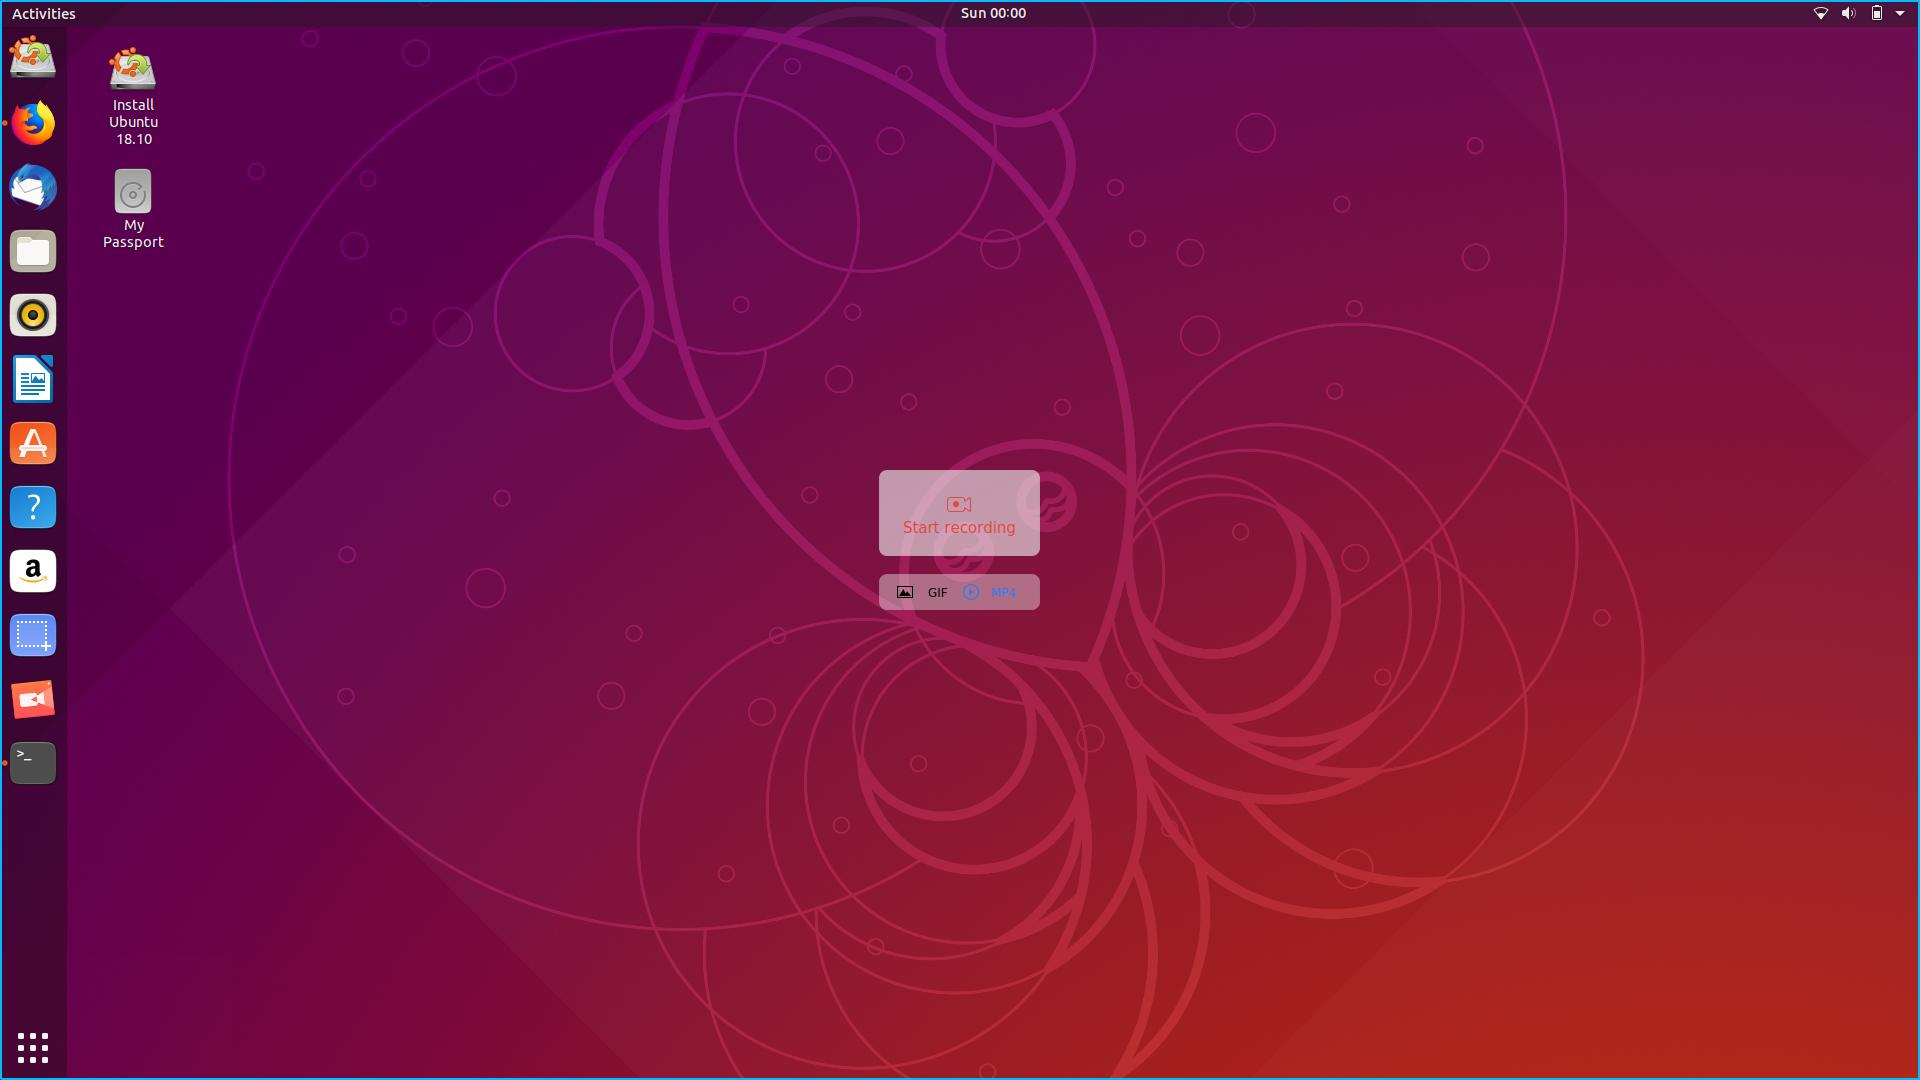 Install Deepin Screen Recorder on Ubuntu 18 10 - Tutorial and Full